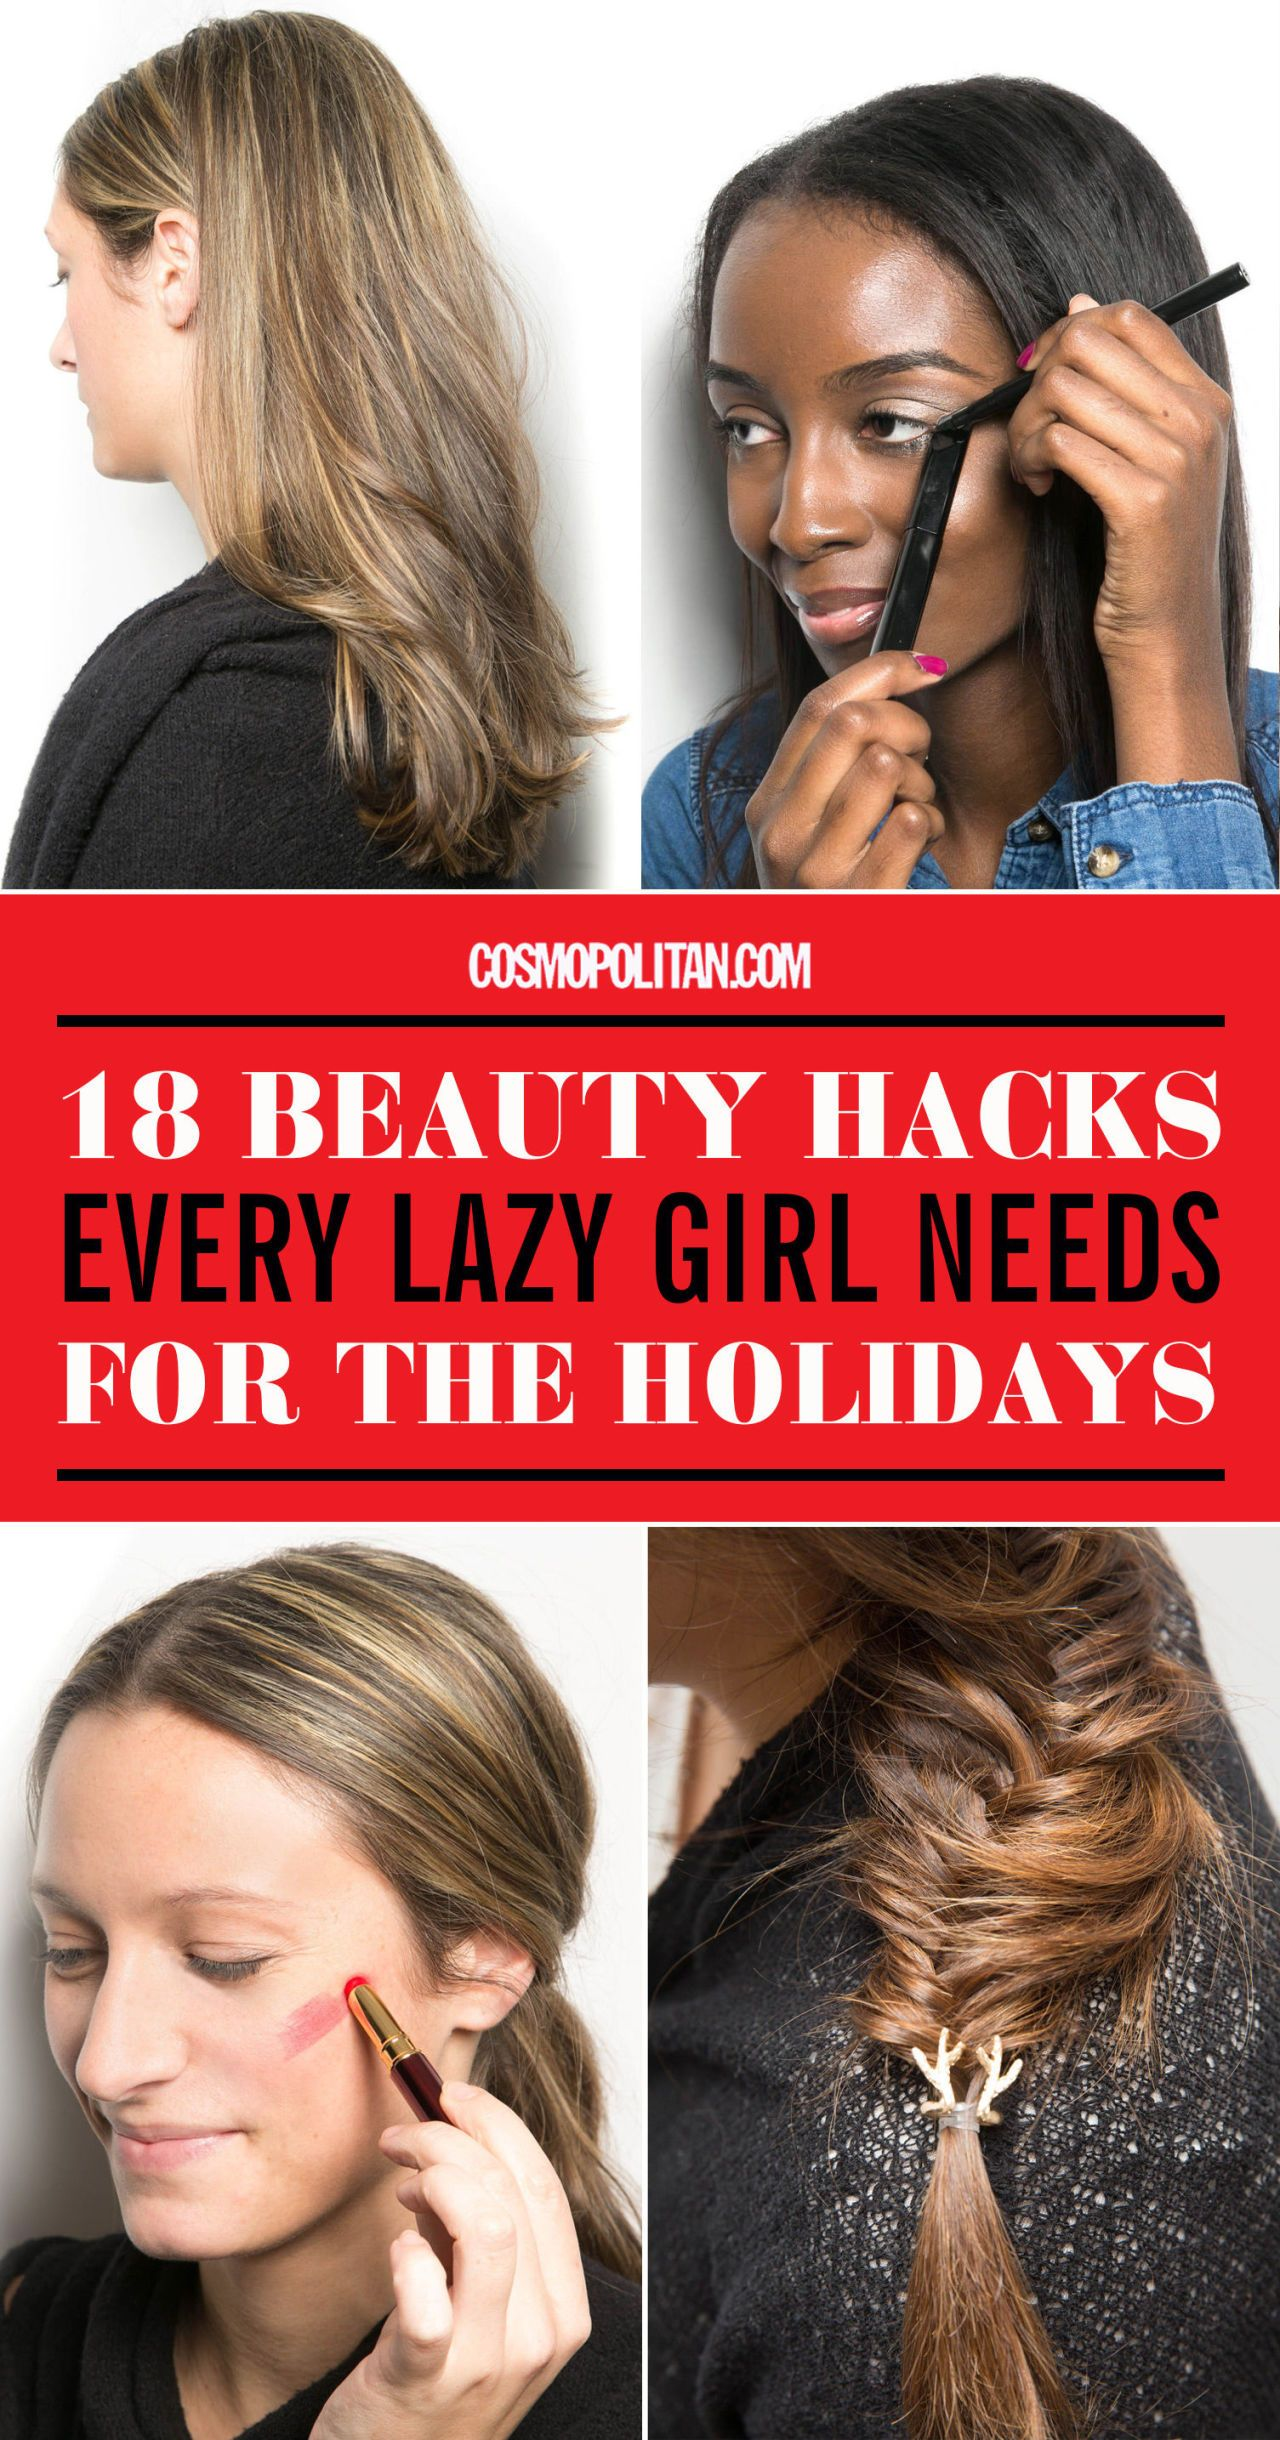 18 Genius Beauty Hacks Every Lazy Girl Needs for the Holidays